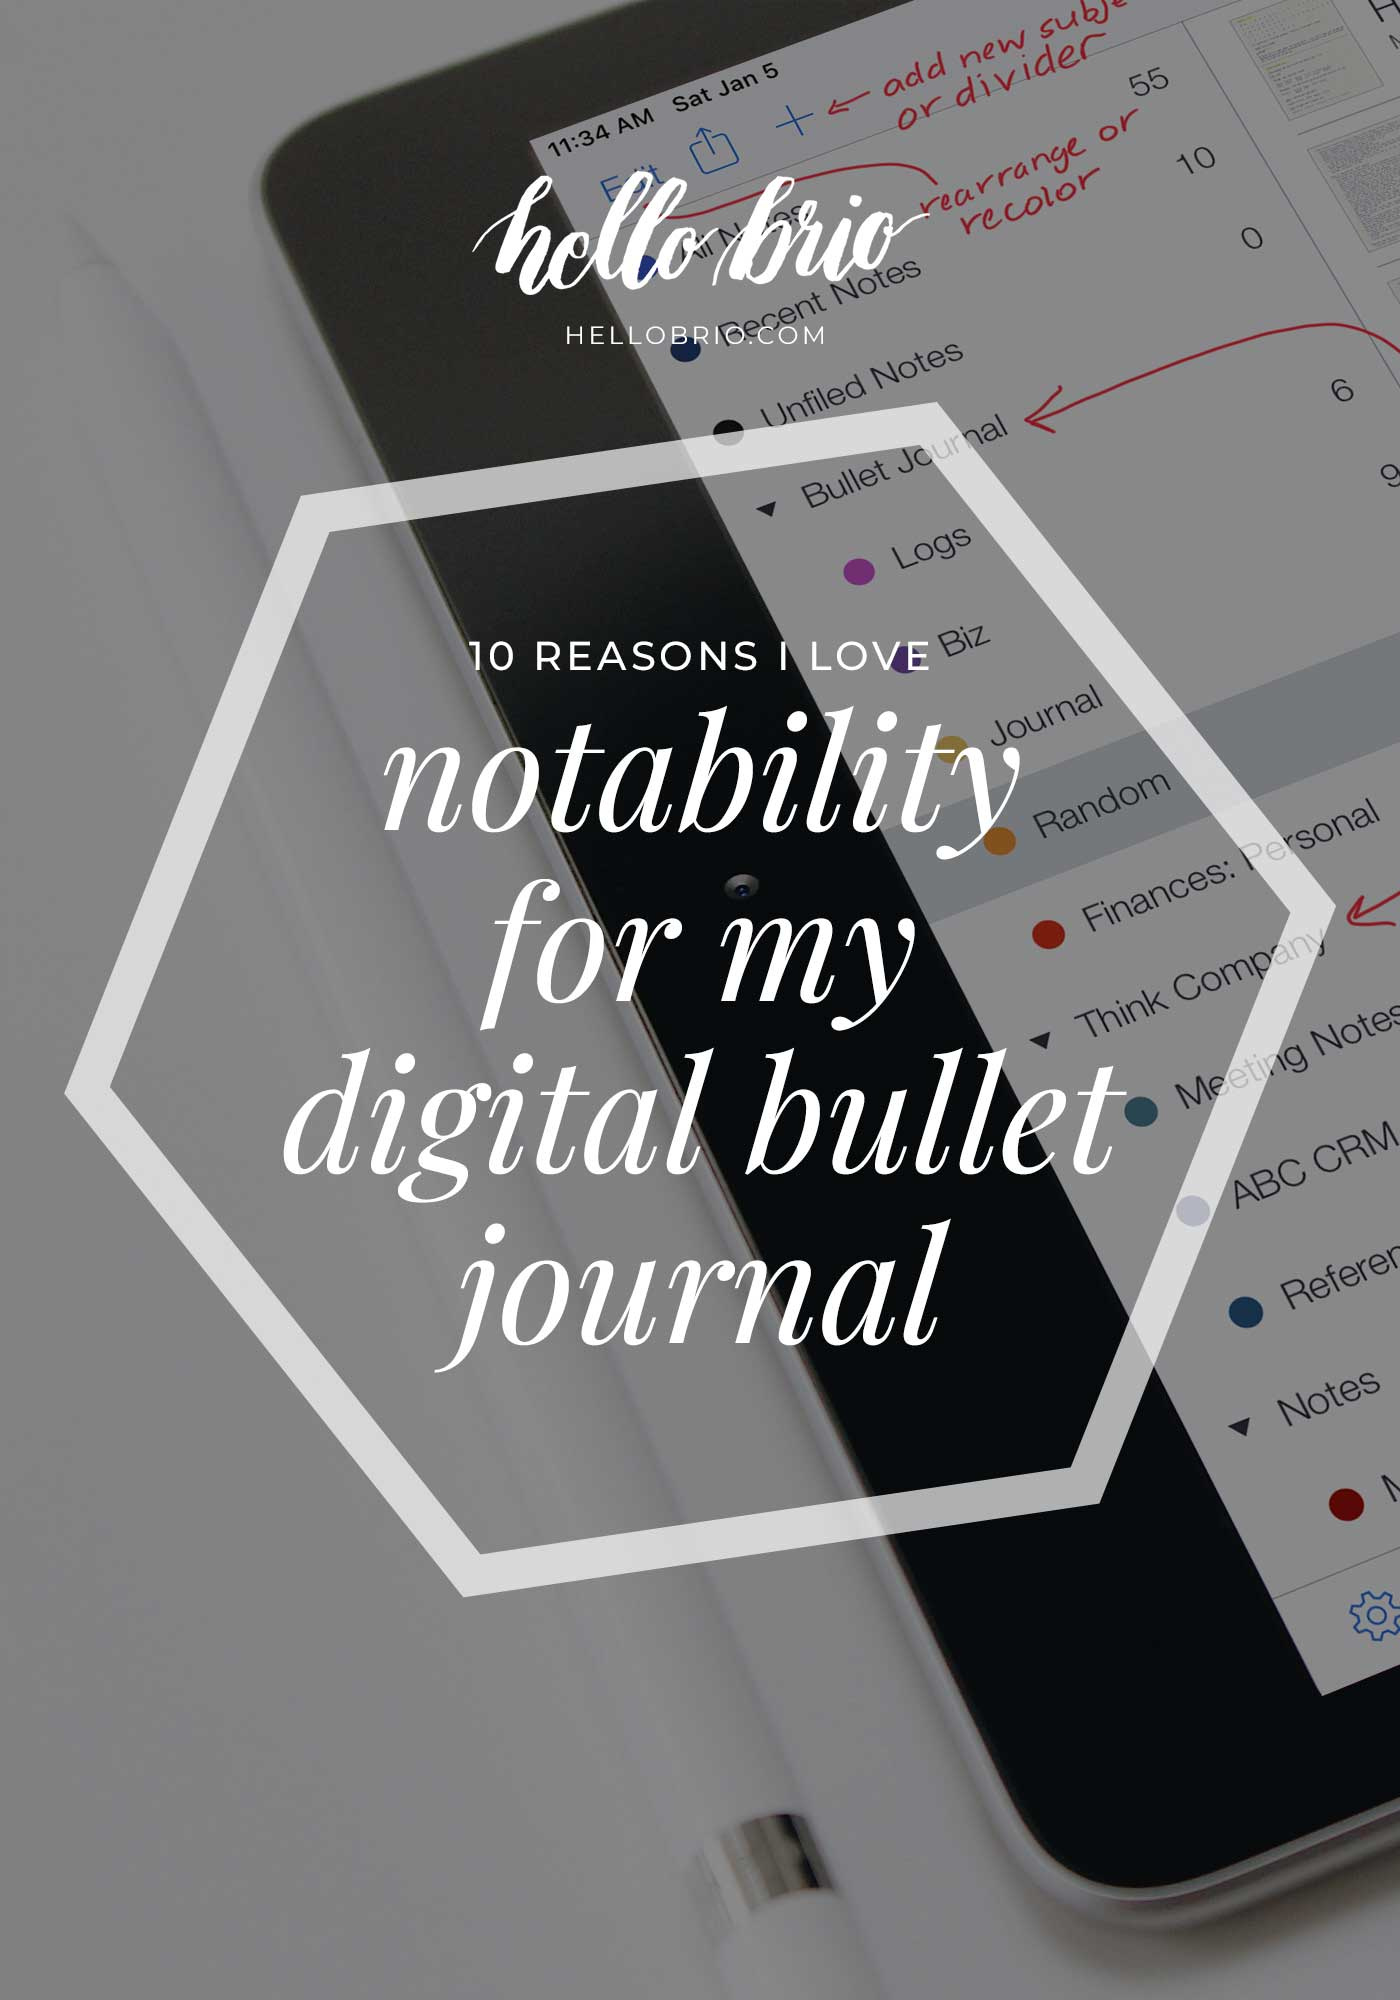 10 Reasons I love Notability for digital bullet journaling | Hello Brio